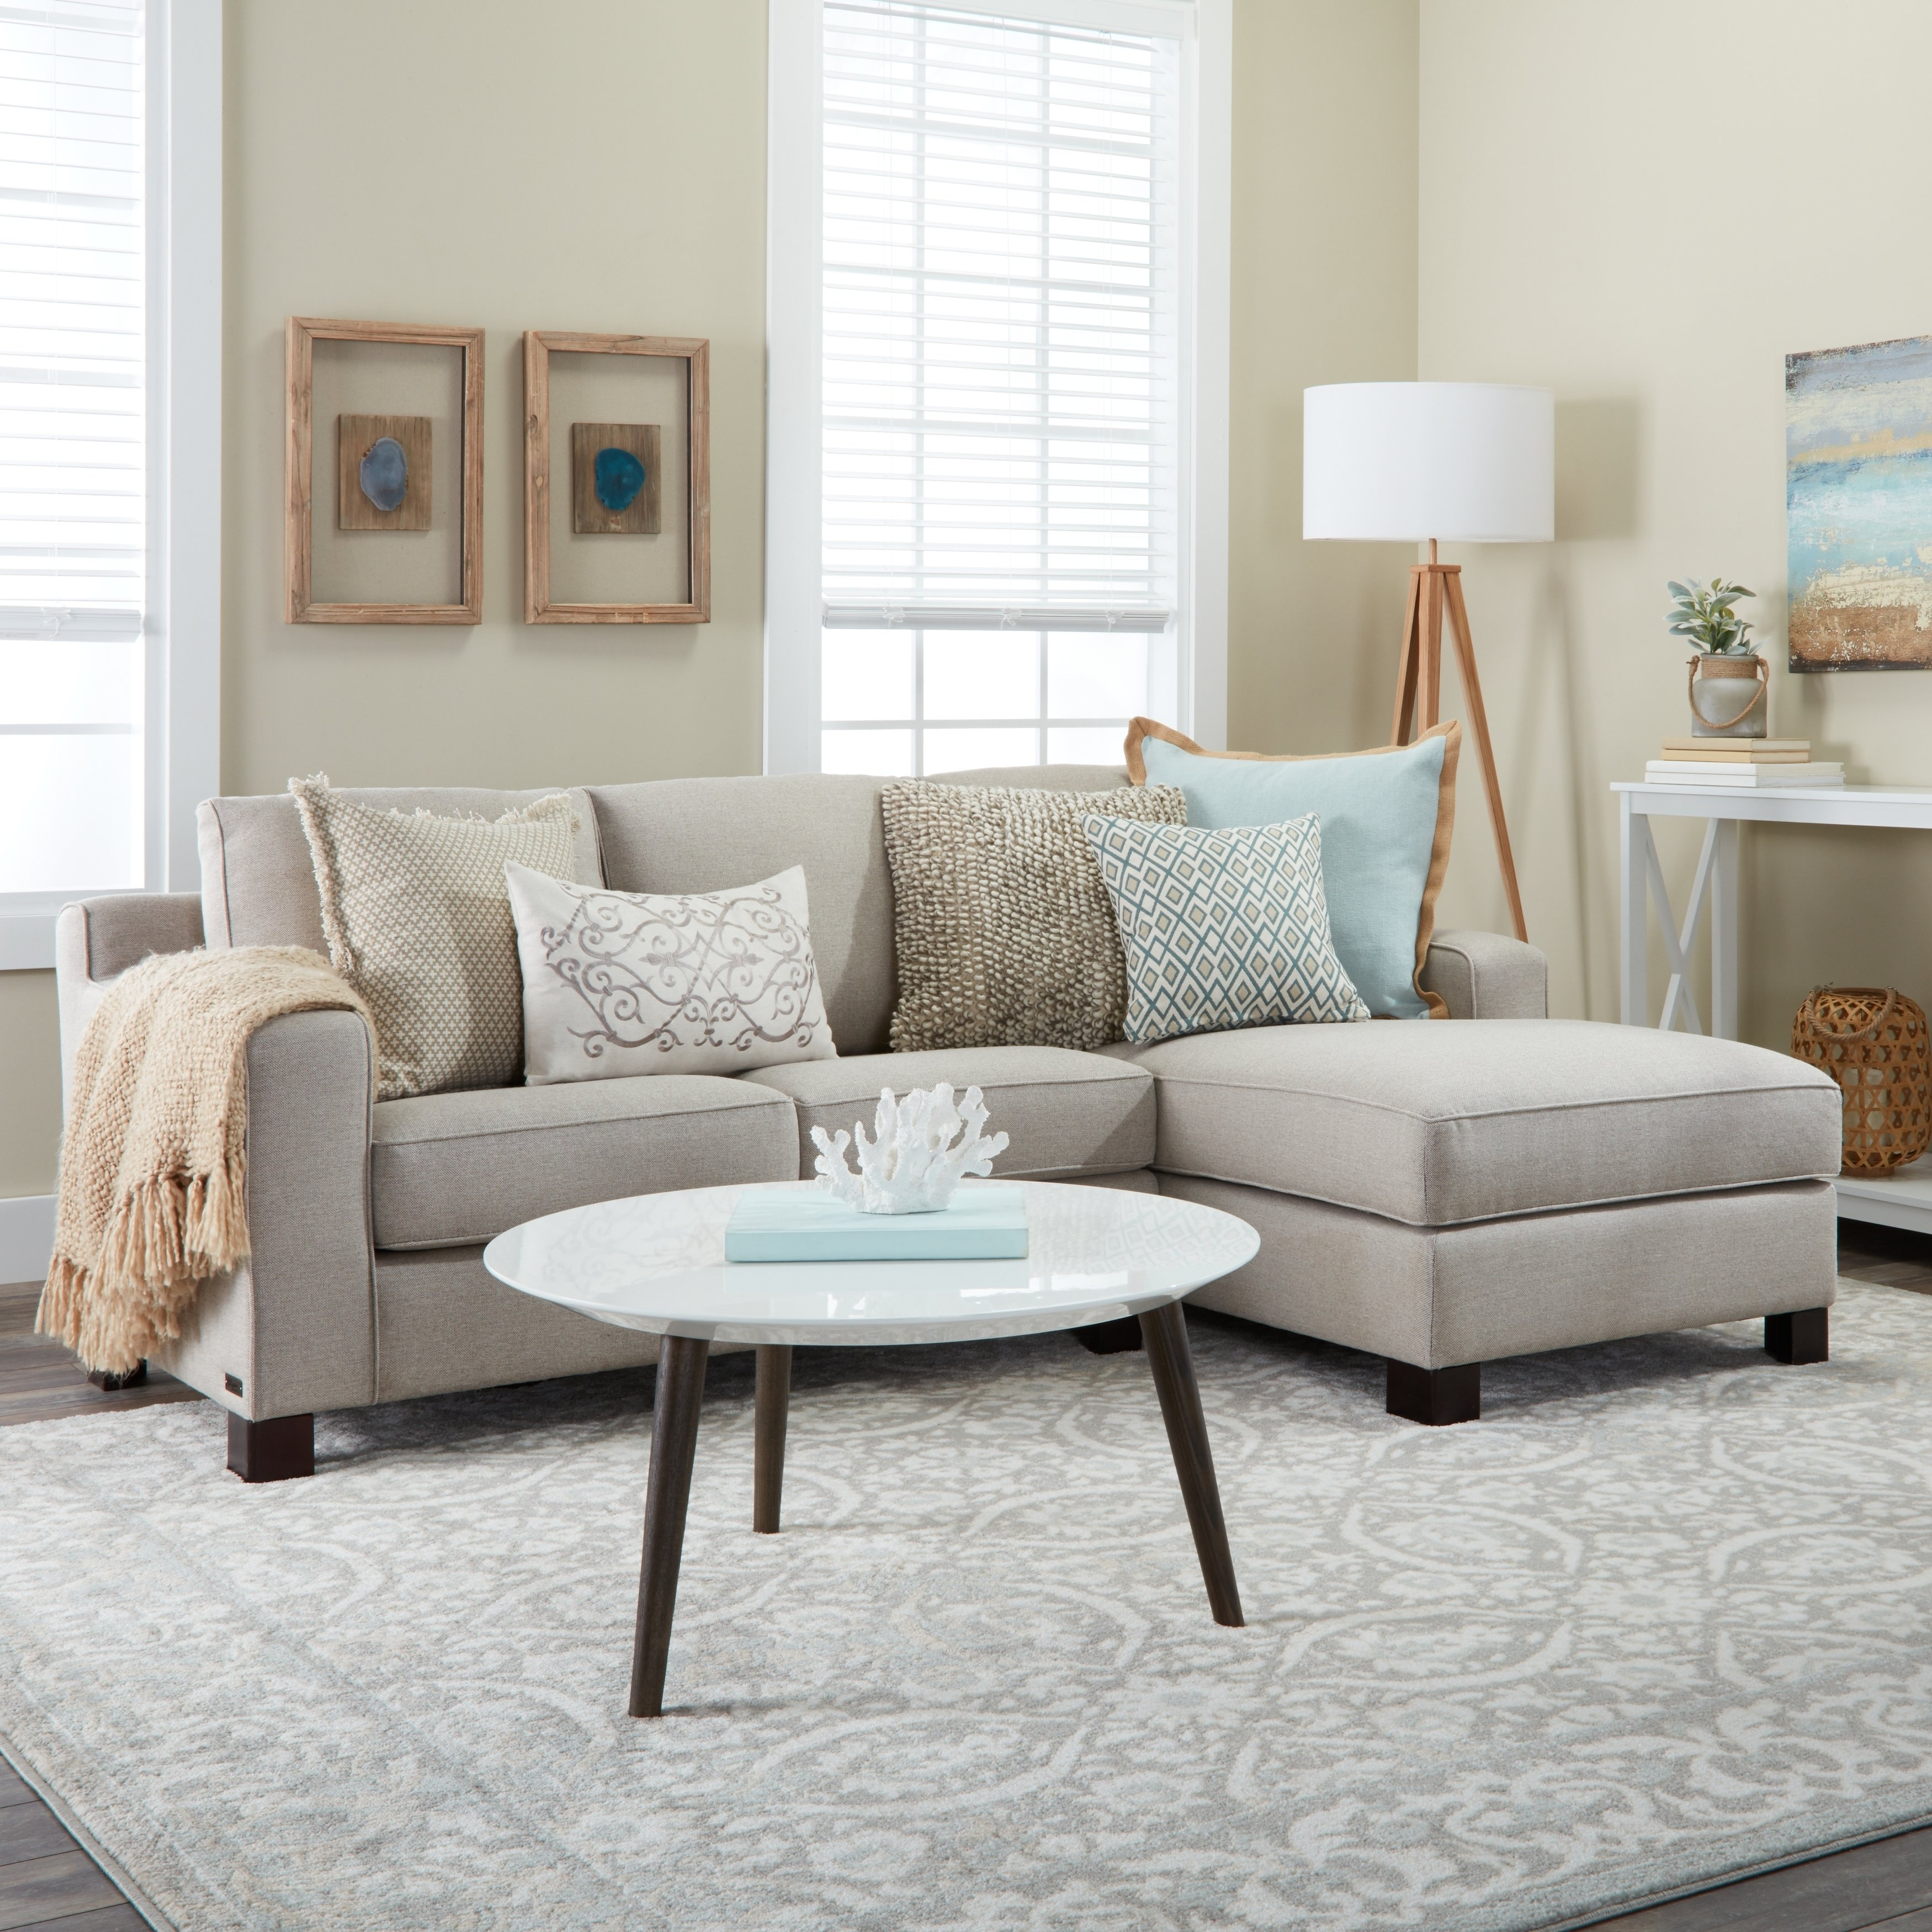 Shop Sectional Sofa With Chaise In Light Grey - On Sale - Free in Kristen Silver Grey 6 Piece Power Reclining Sectionals (Image 24 of 30)